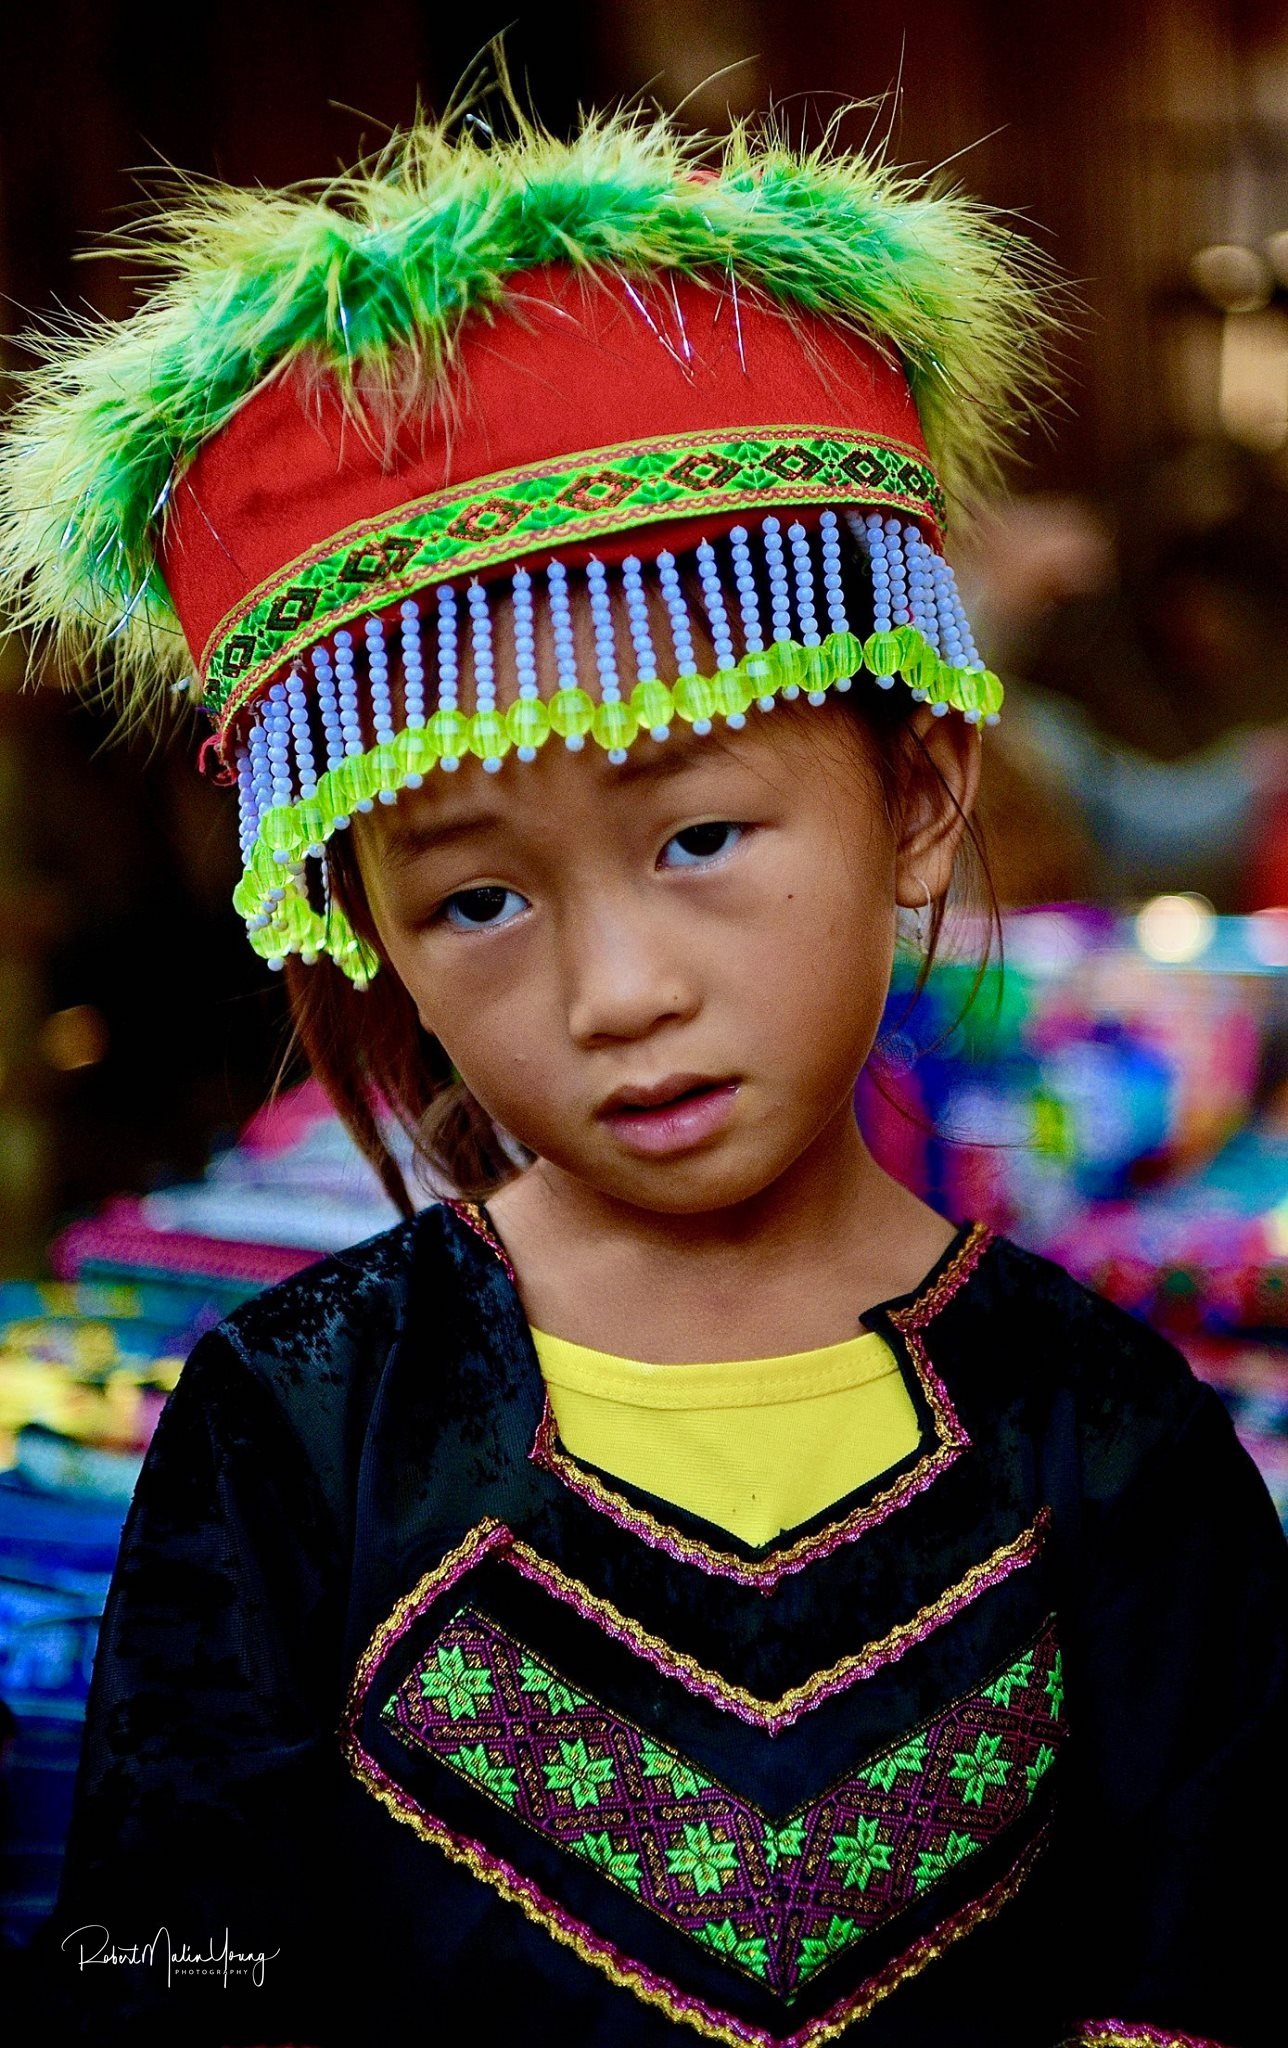 The Family of Man - Laos 2016 by Robert Malin Young